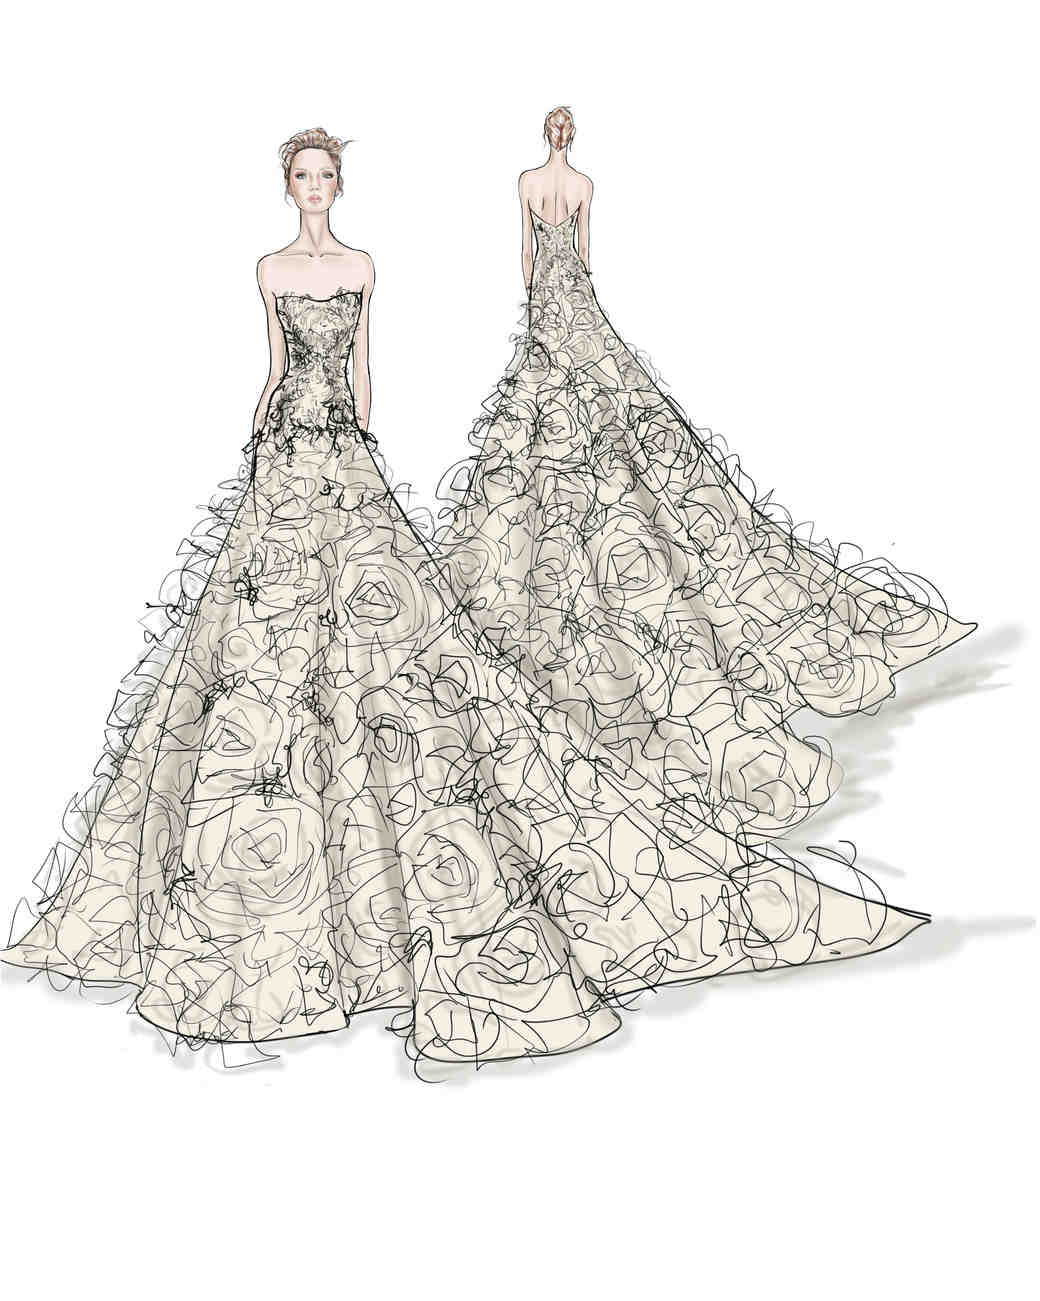 msw-bridal-sketches-inspiration-watters-1.jpg